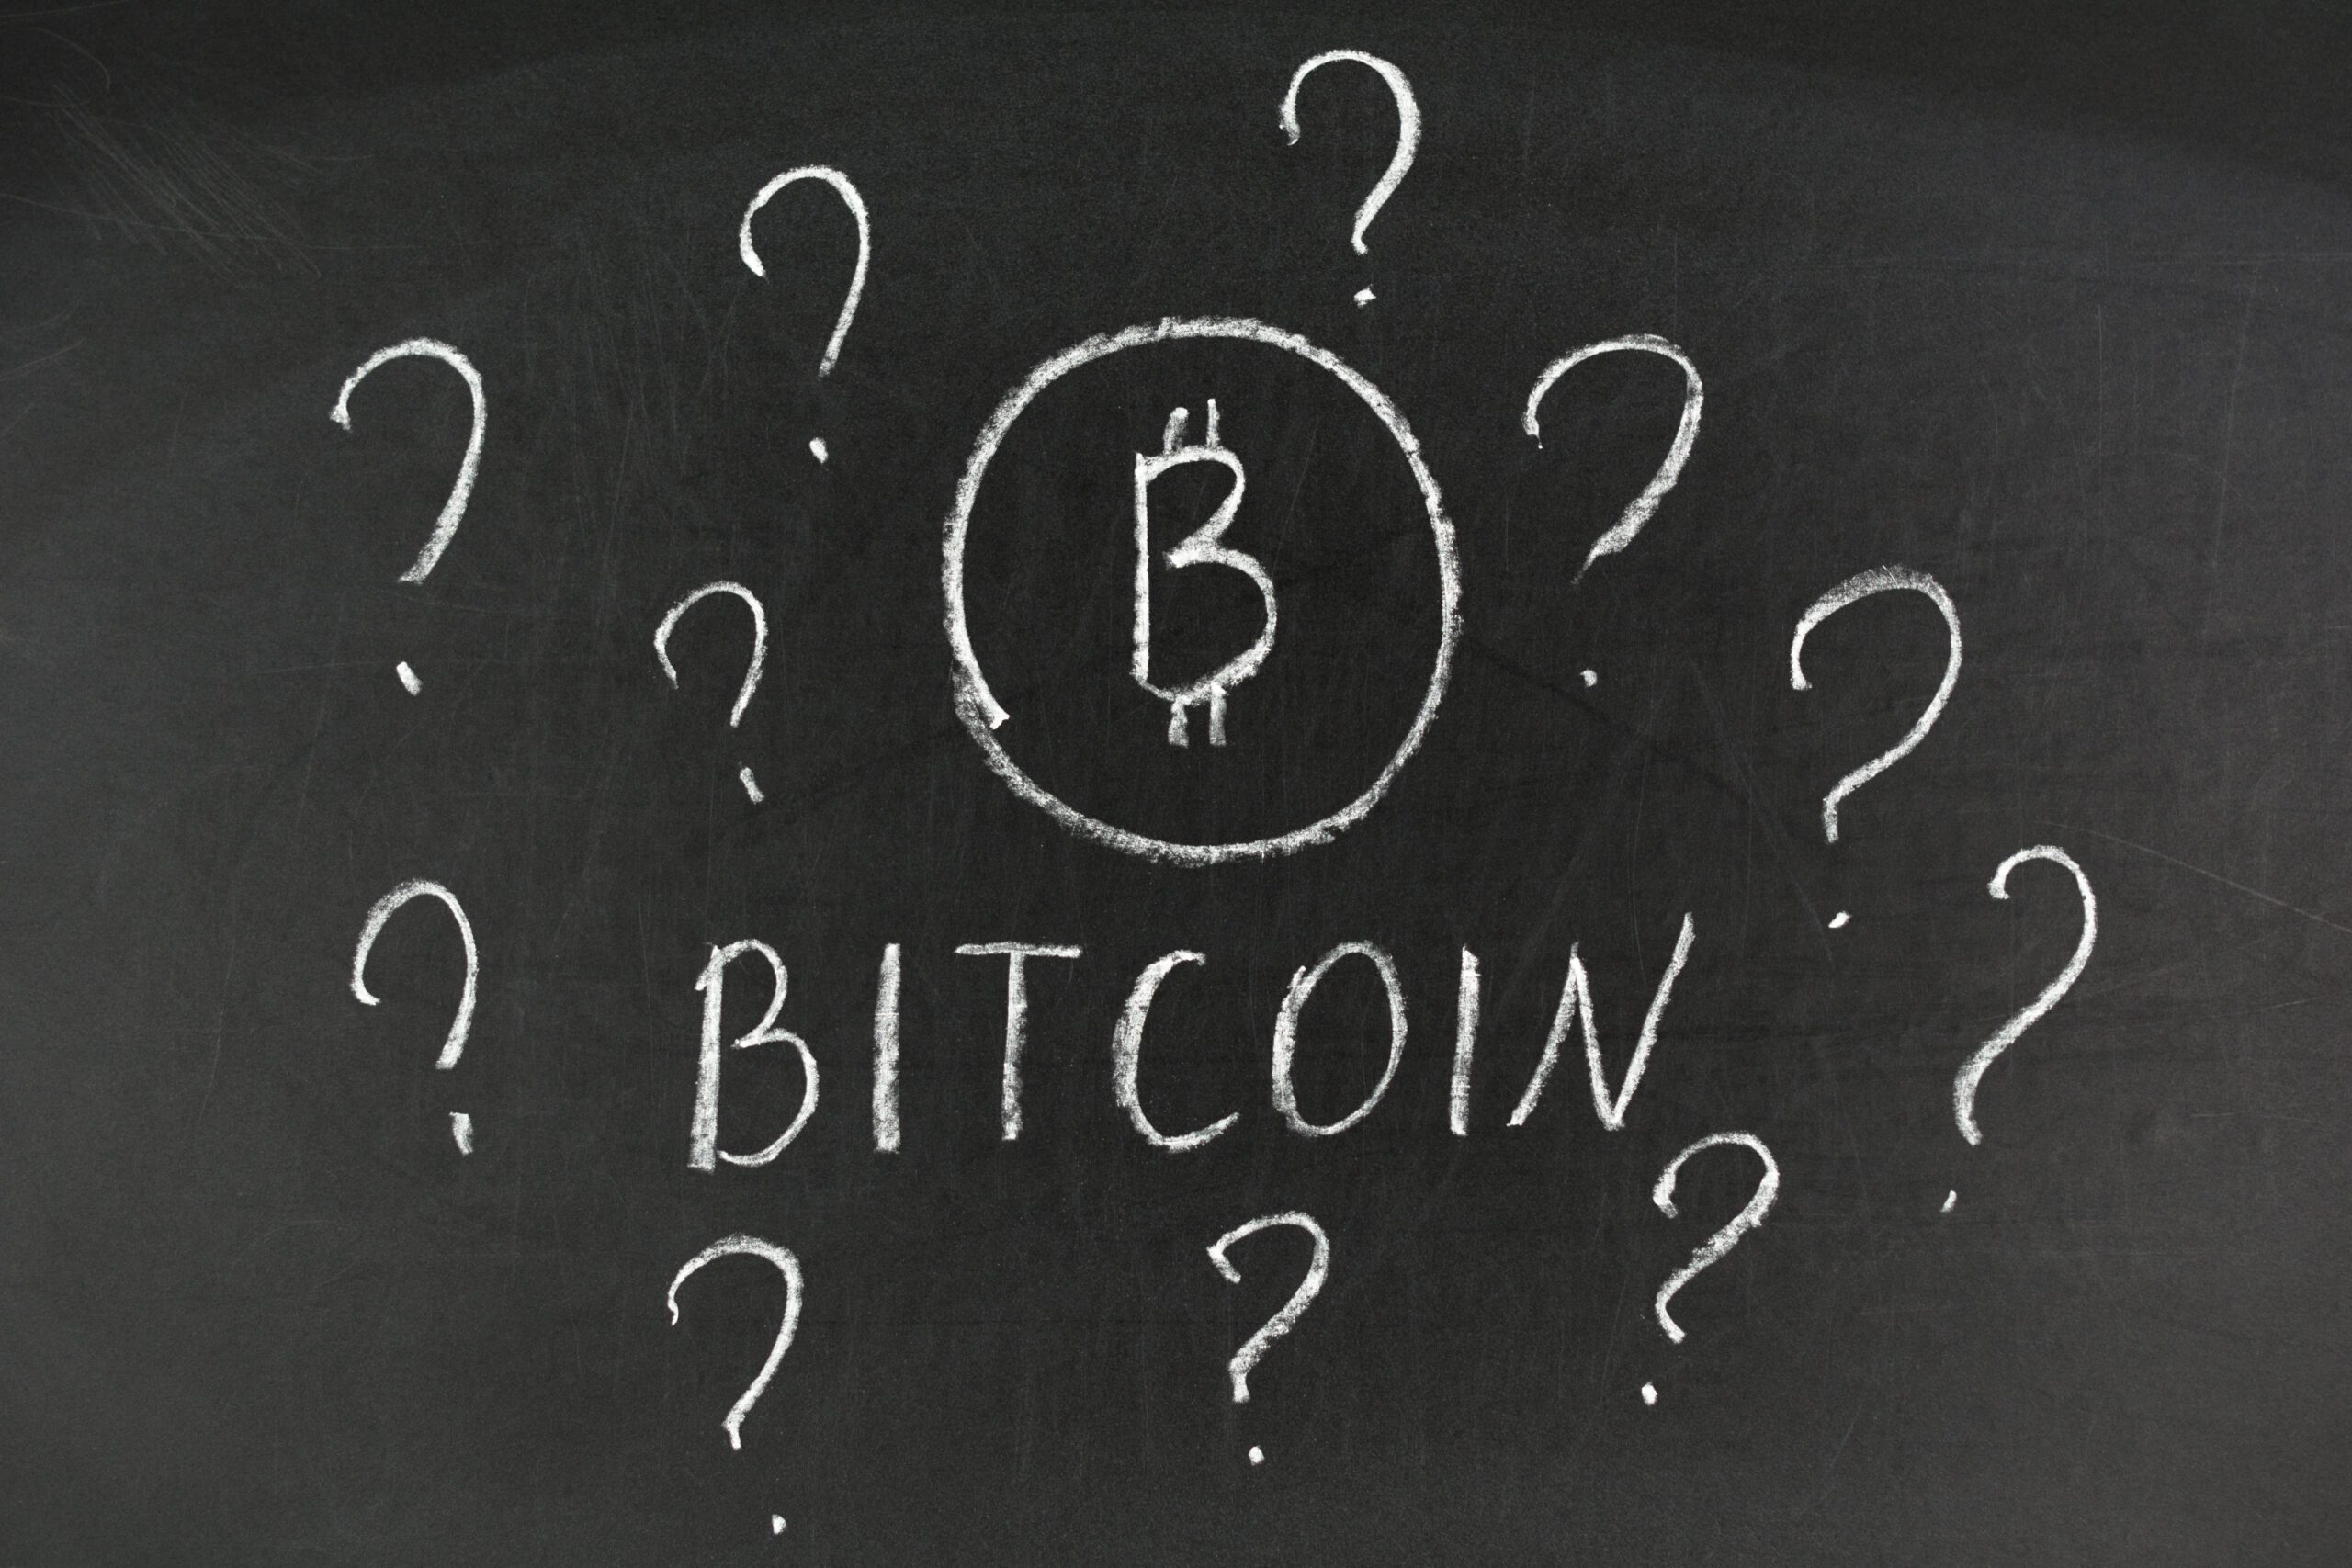 What is bitcoin, written on the blackboard with white chalk